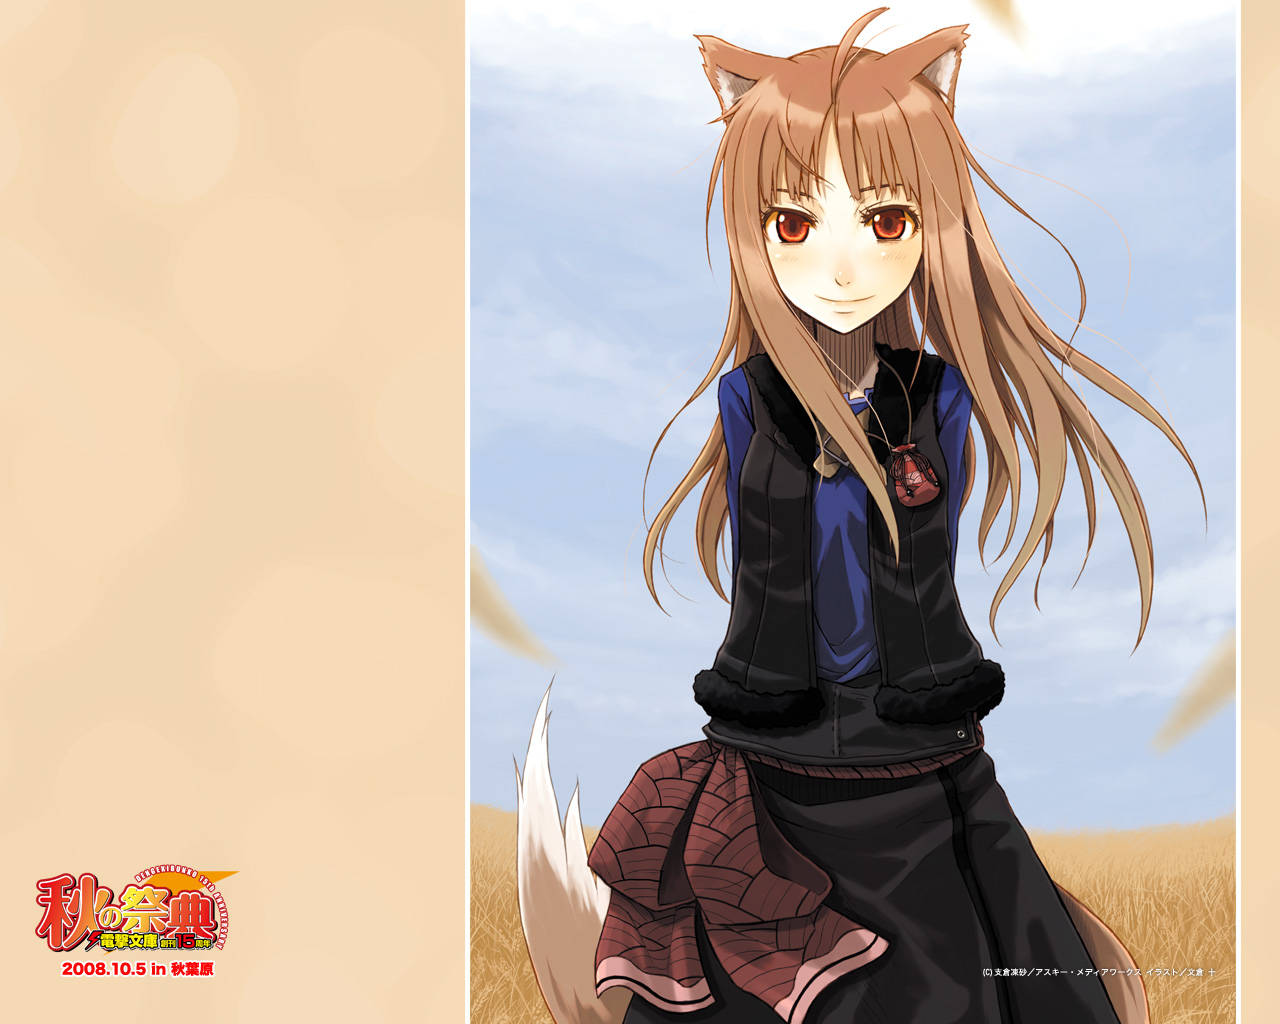 animal_ears brown_hair clouds horo long_hair red_eyes sky spice_and_wolf tail wolfgirl